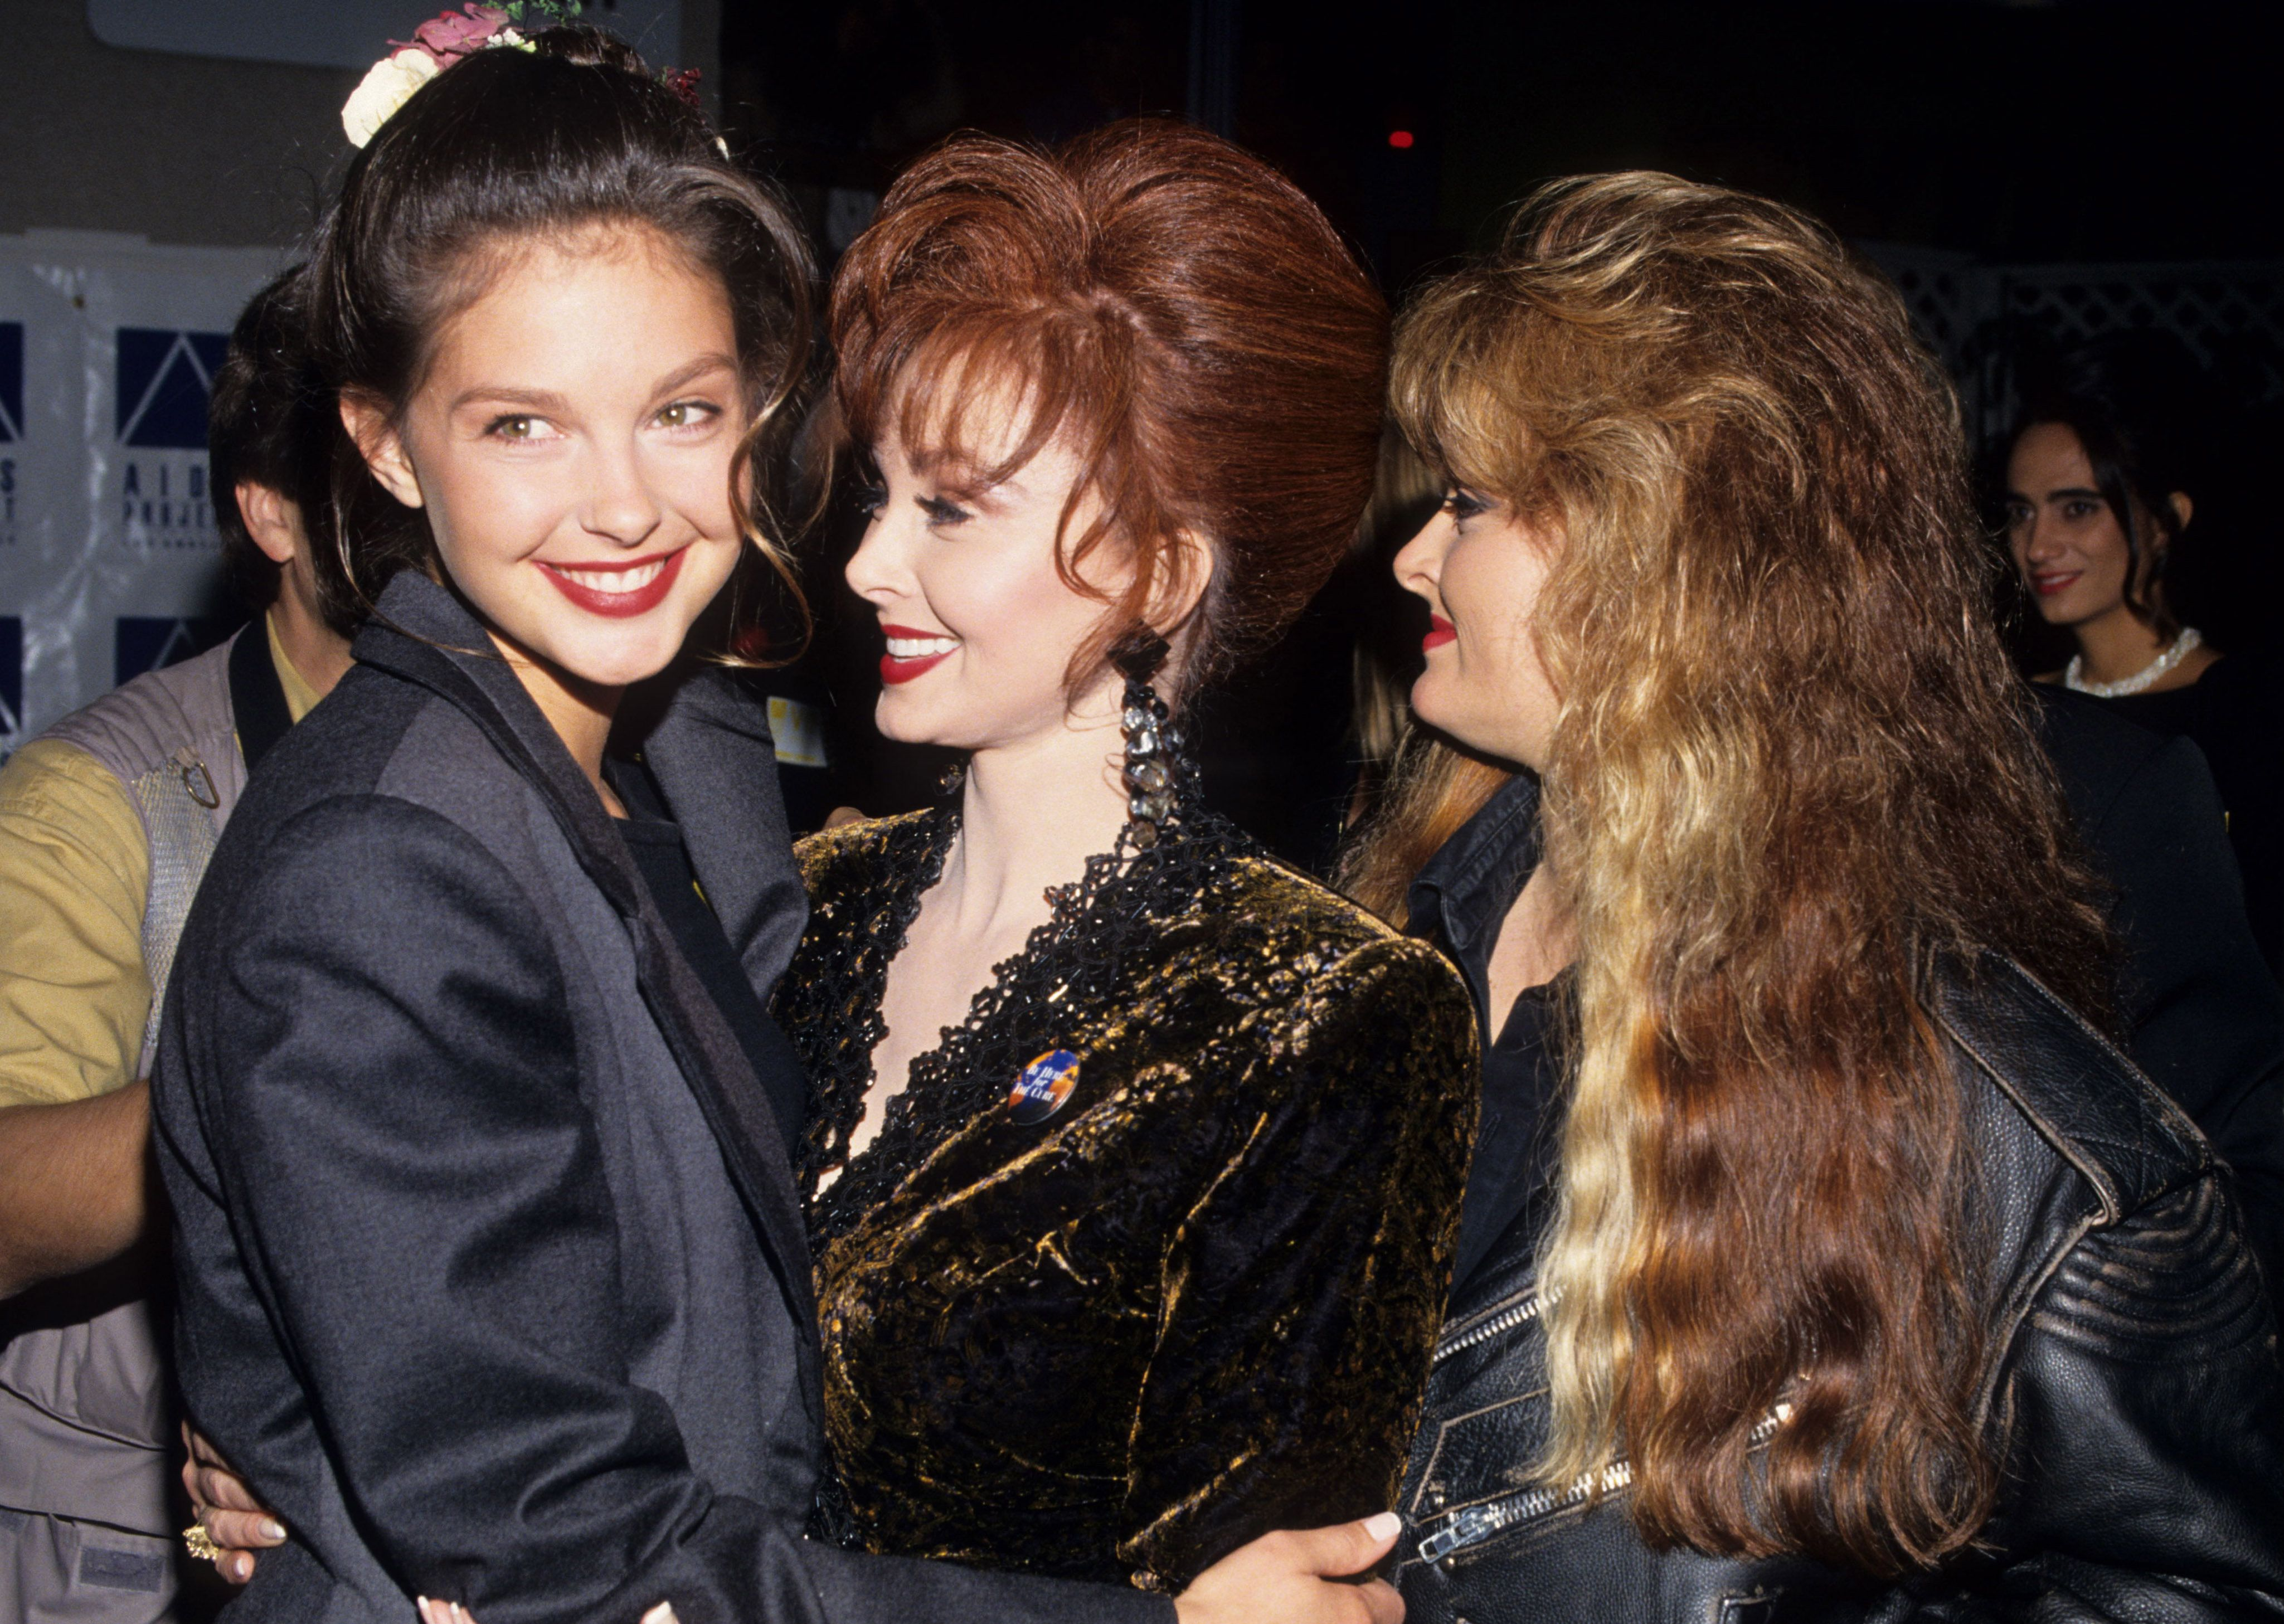 Ashley Judd, Naomi Judd and Wynonna Judd during APLA 6th Commitment to Life Concert Benefit at Universal Amphitheater in Universal City, California, United States. (Photo by Ke.Mazur/WireImage)